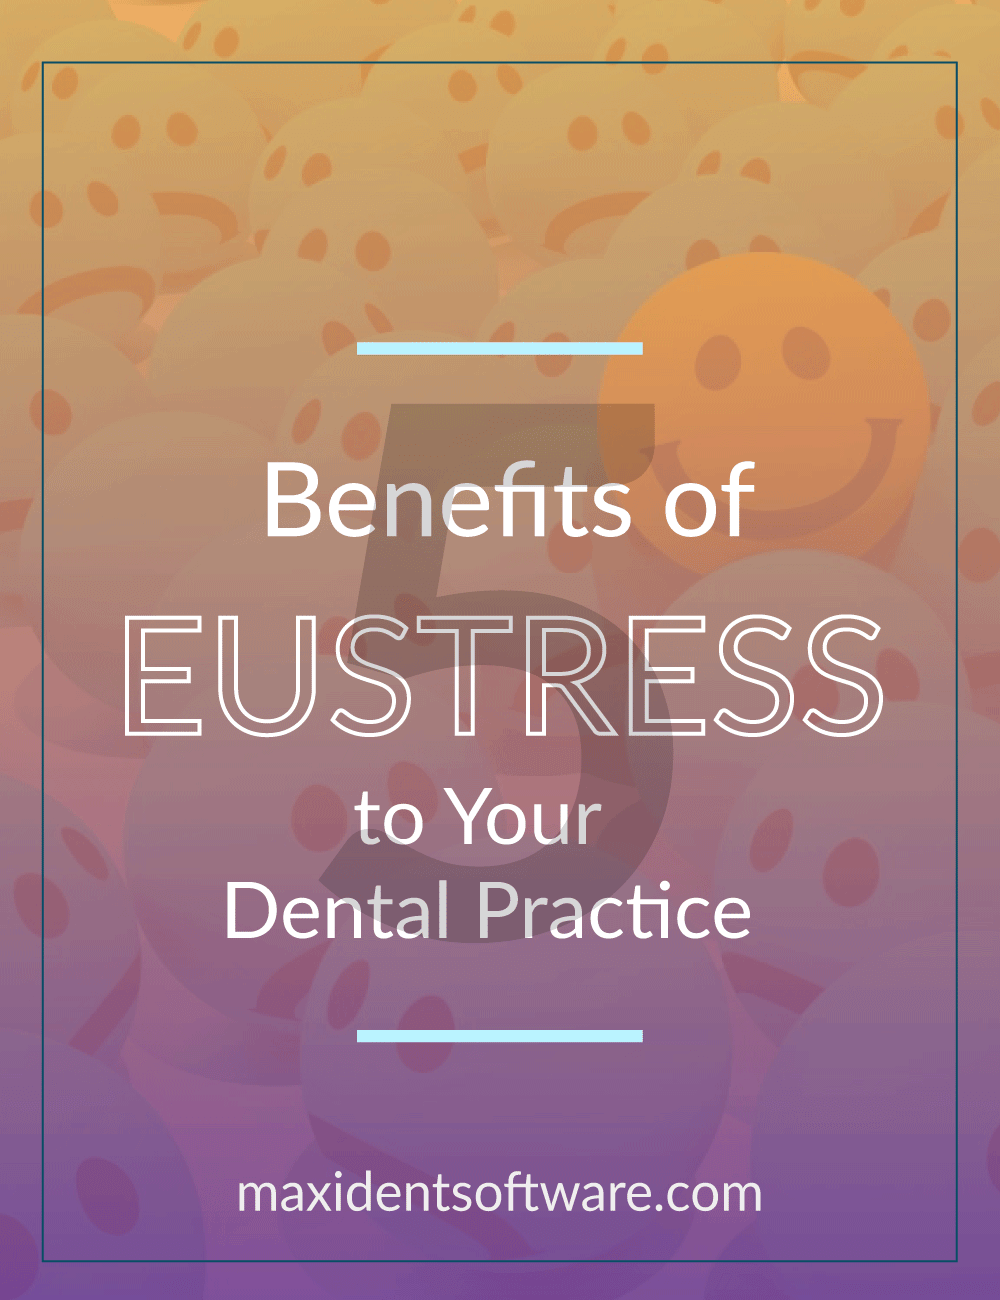 Five Benefits of Eustress to your Dental Practice